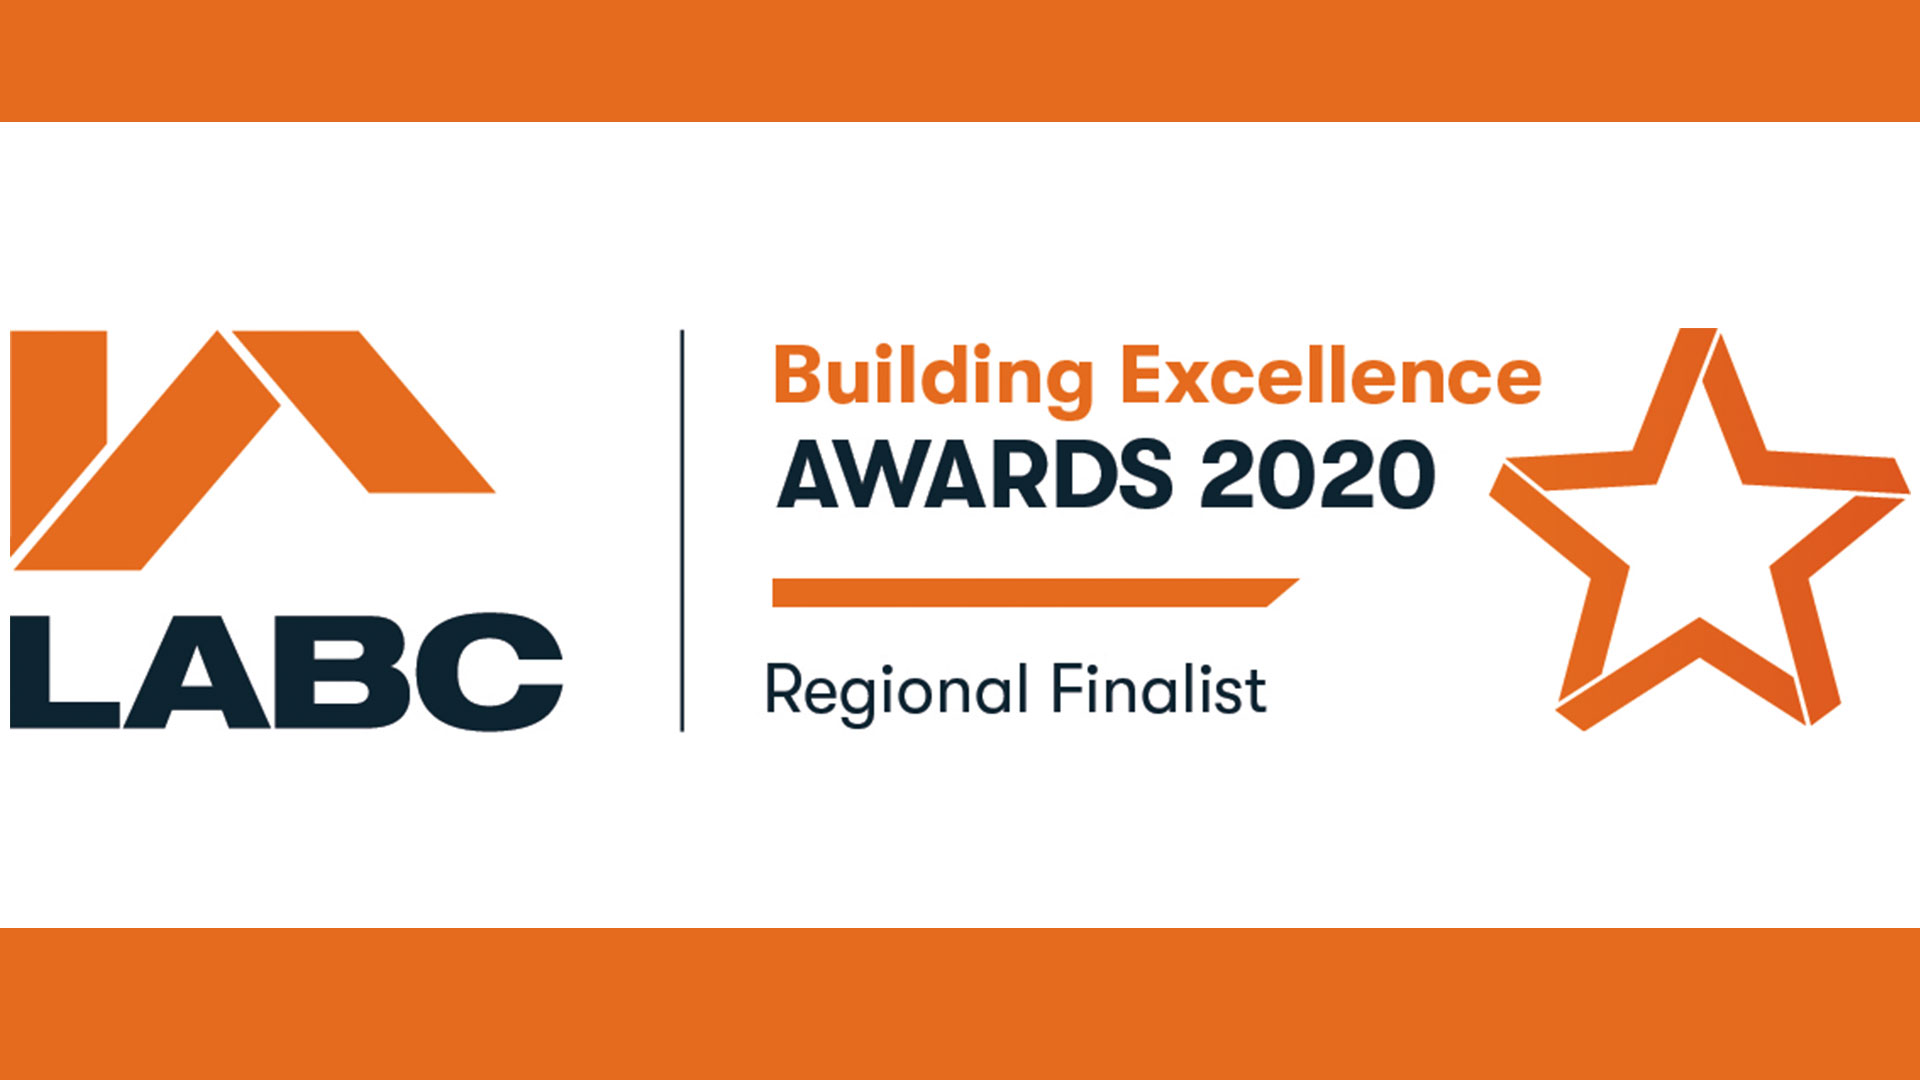 Abbott Hull Associates - LABC Awards Regional Finalist 2020